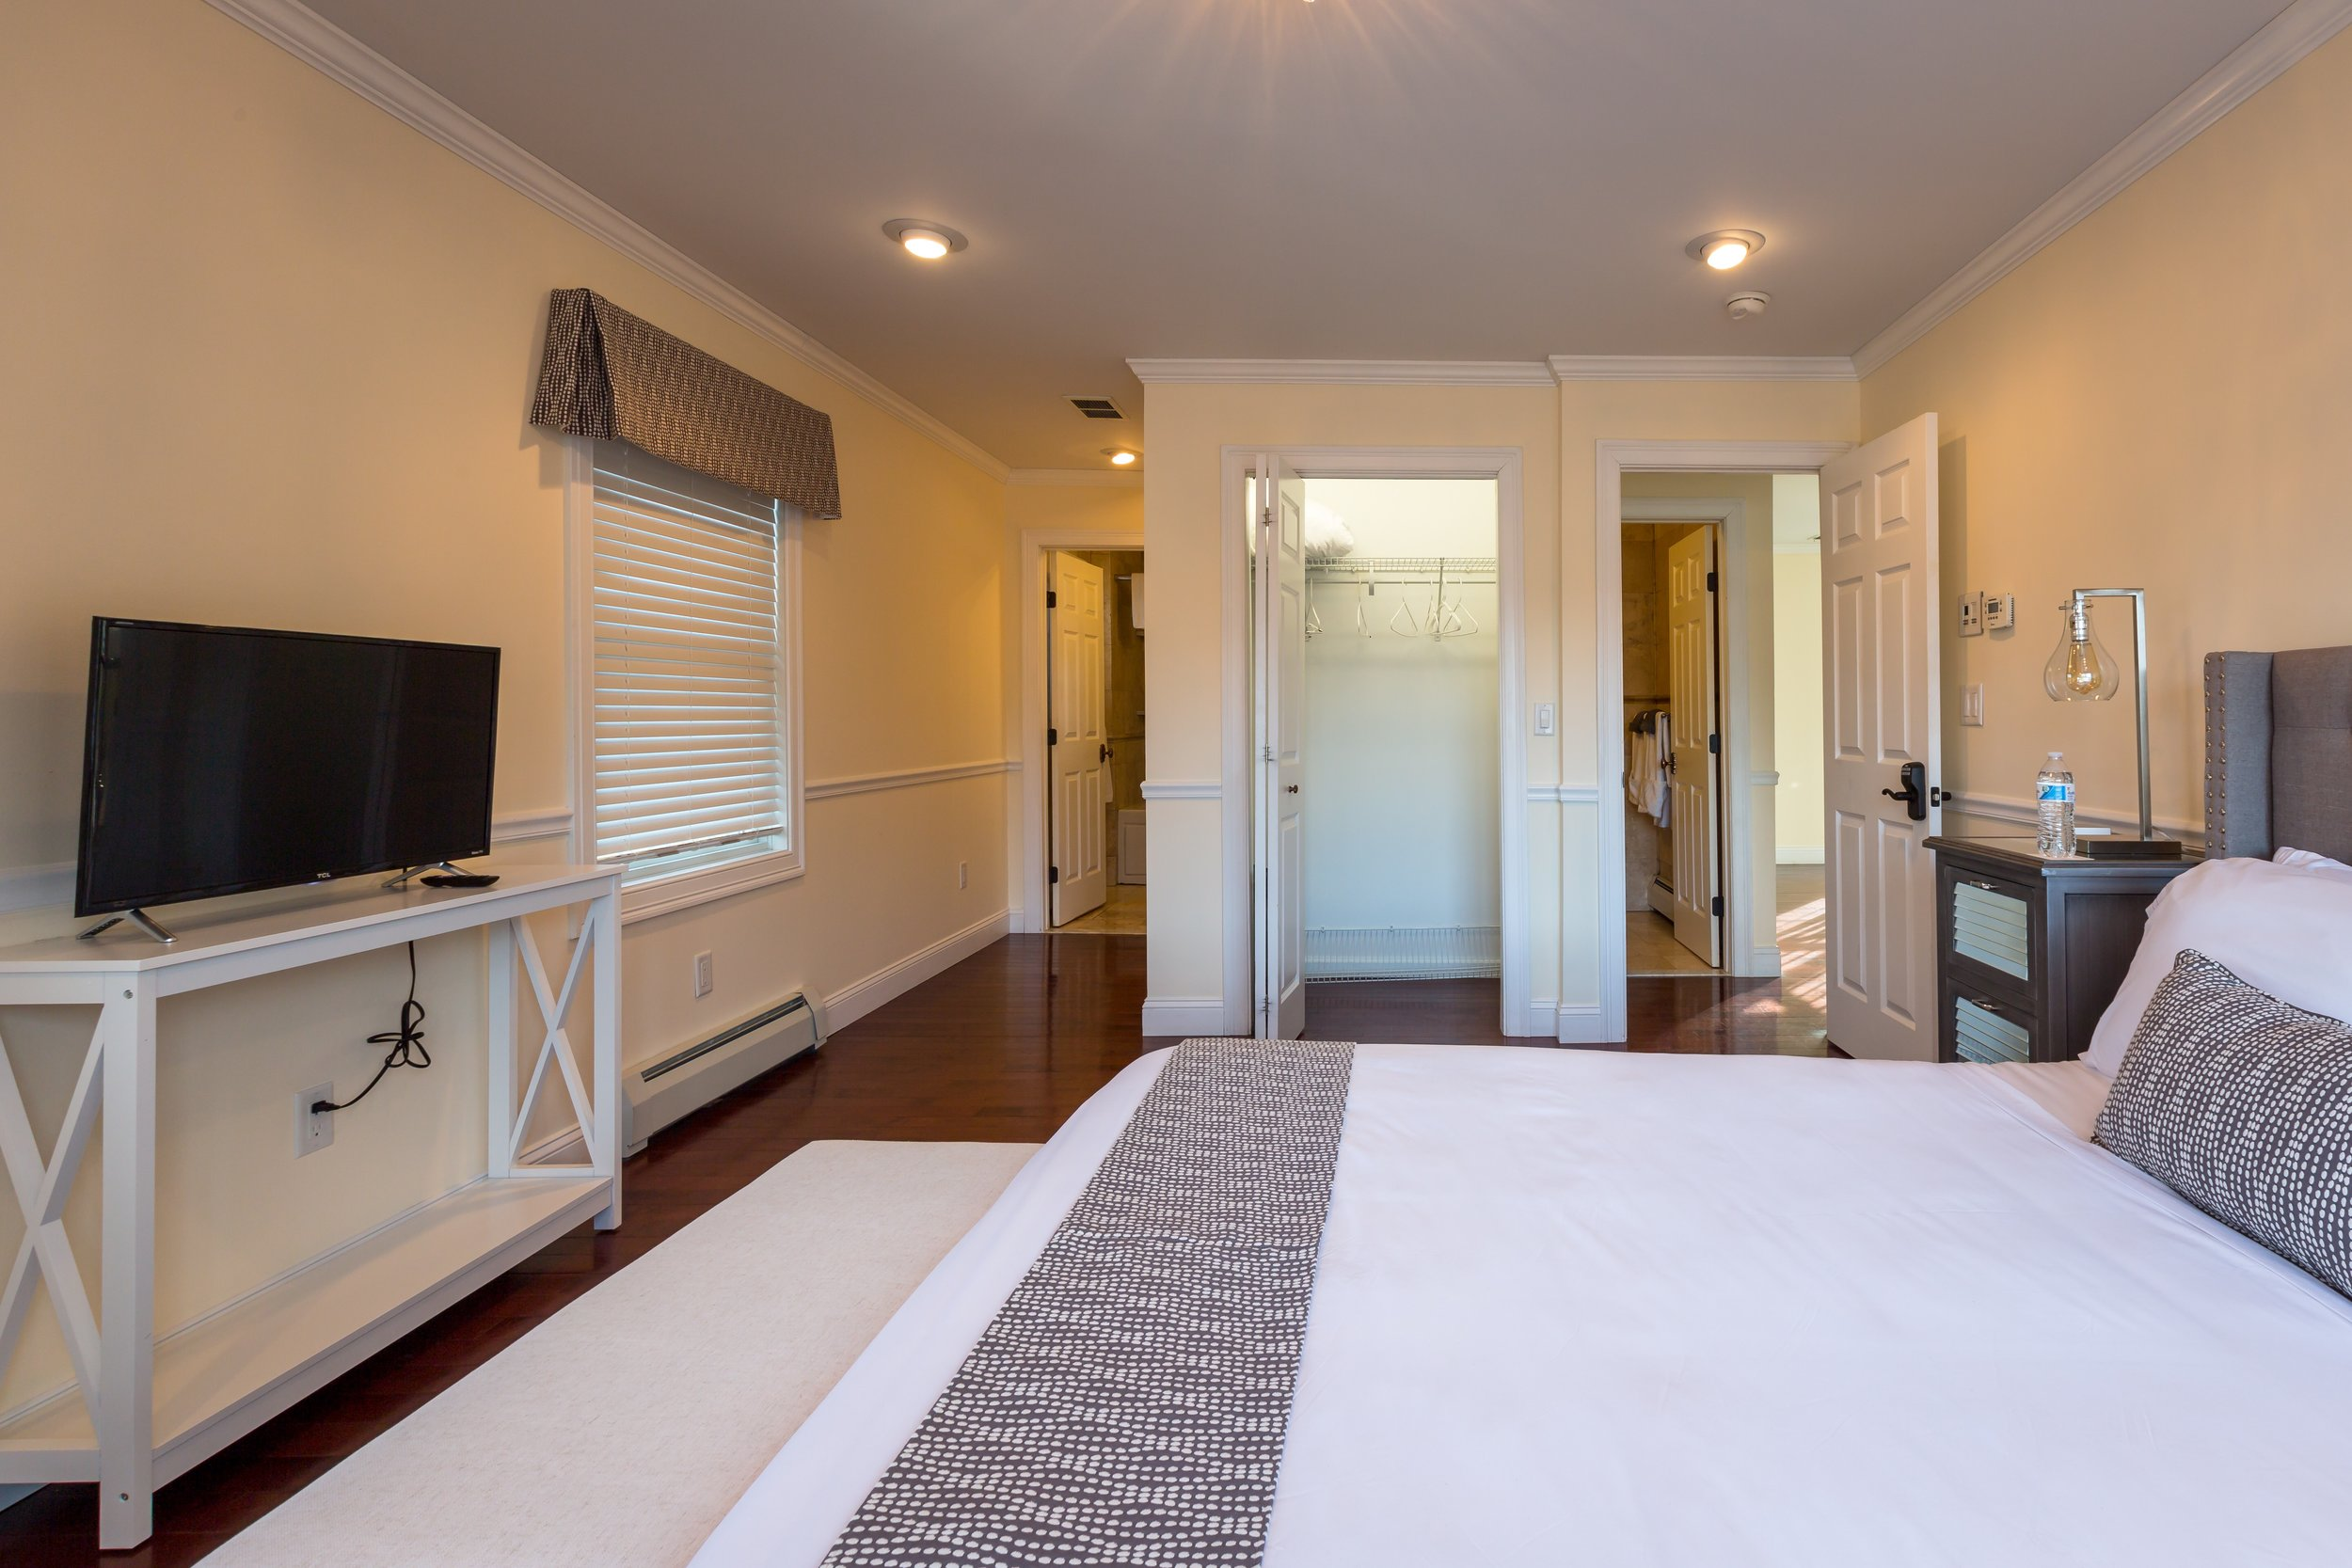 The Etruscan suite is a two bedroom two bathroom suite; perfect for travelers that want to sleep in separate quarters.